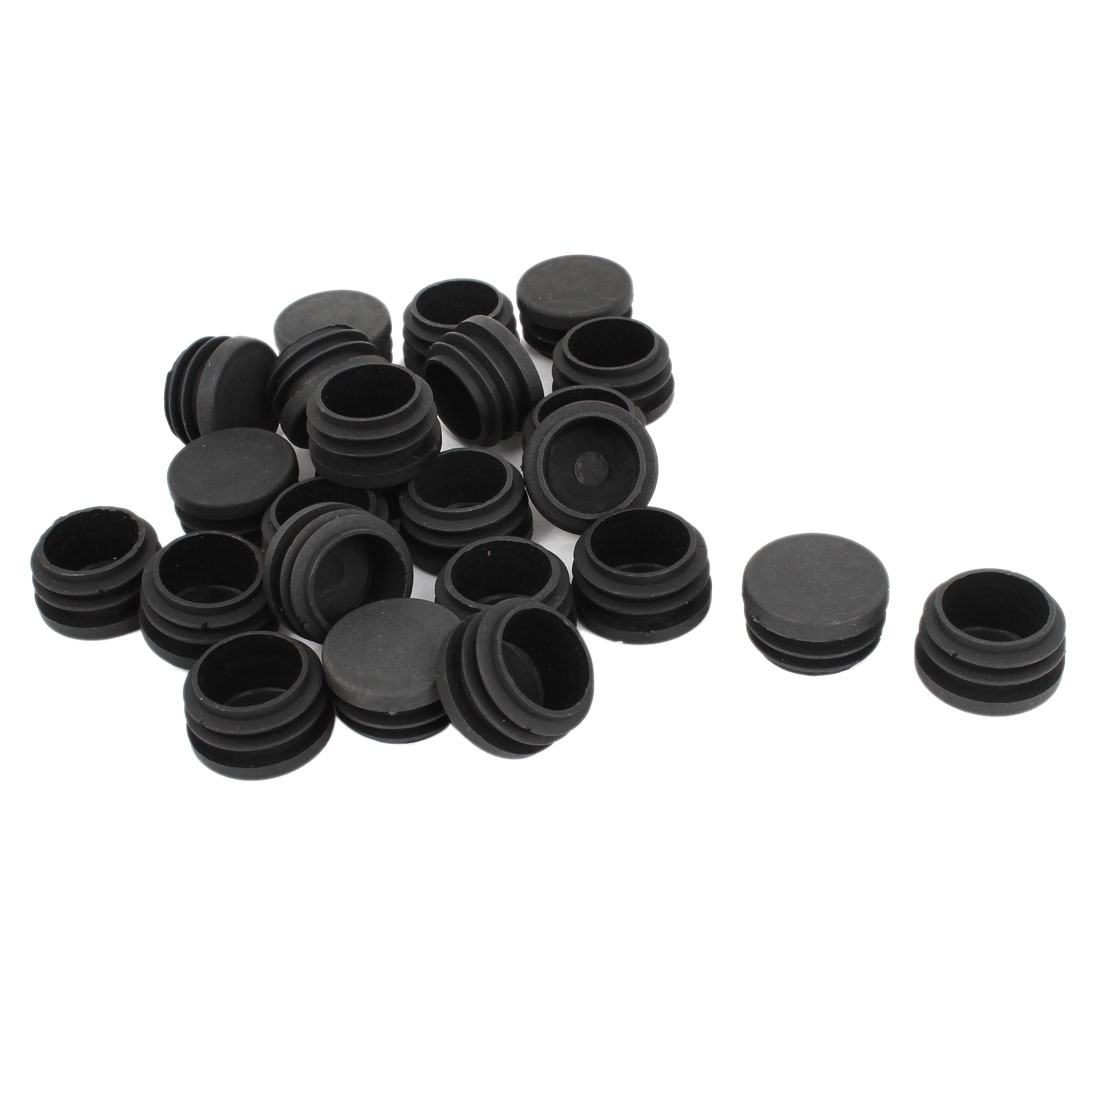 30mm x 21mm Black Plastic Blanking End Caps Round Tube Insert Plug Bung 24 Pcs